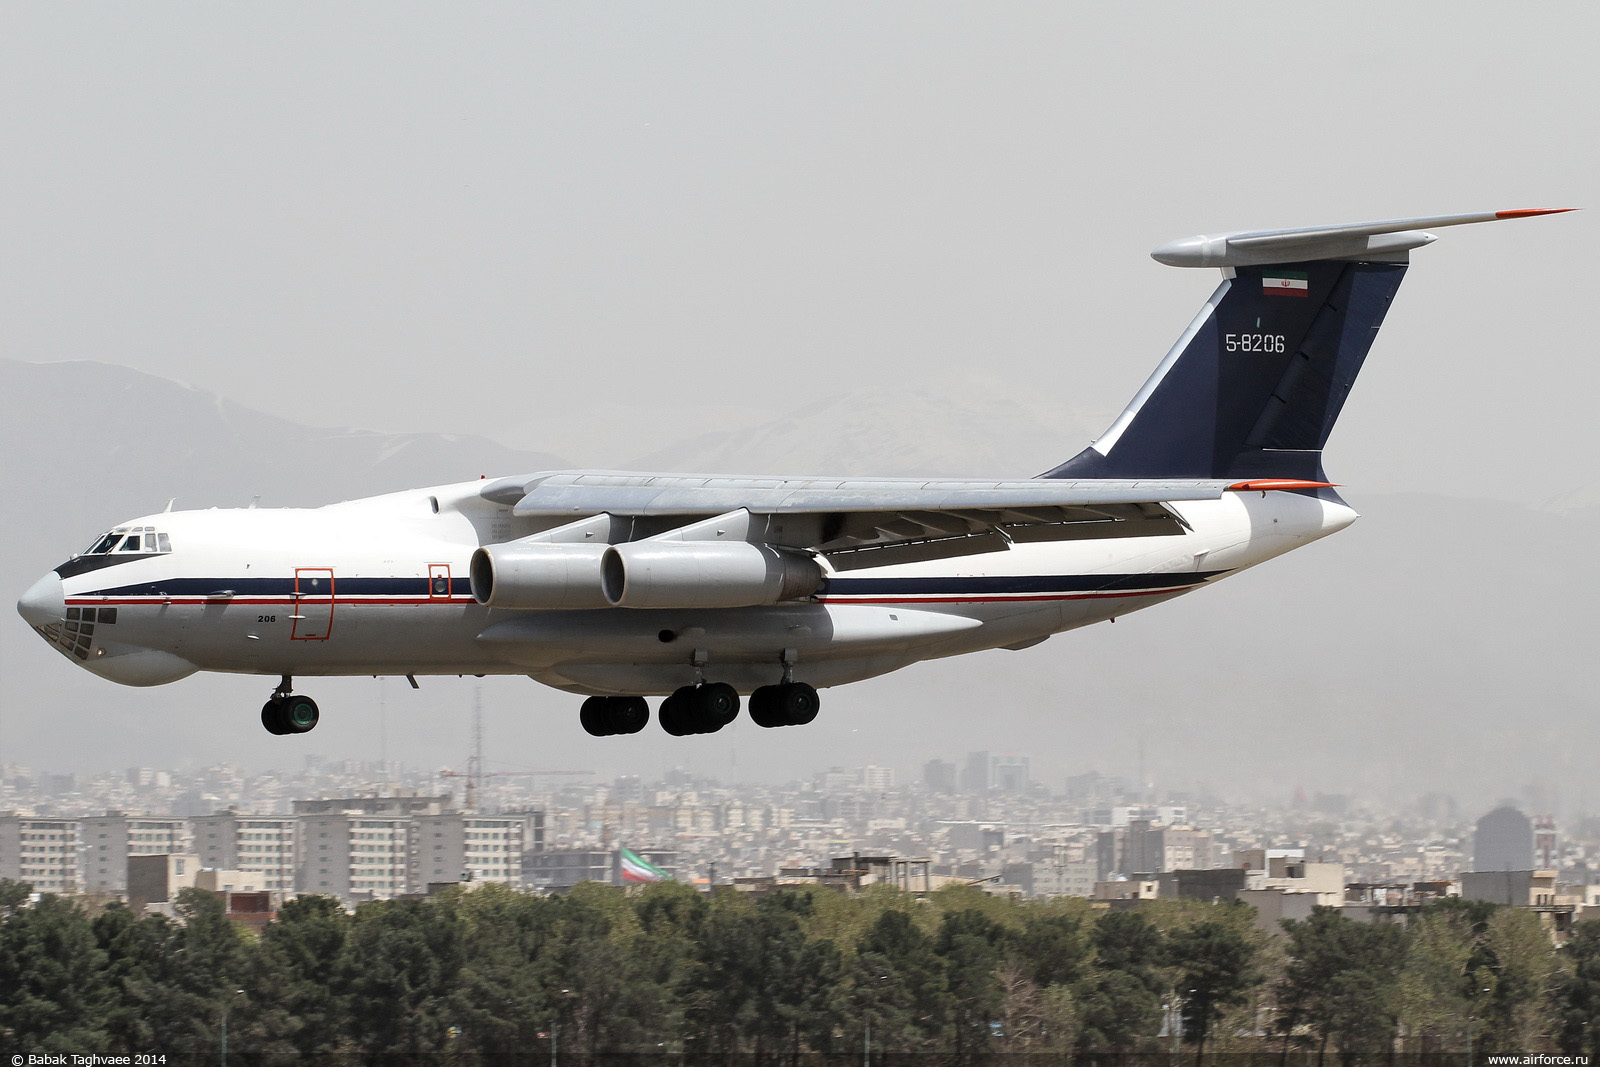 http://www.airforce.ru/content/attachments/56512-b_taghvaee_il-76td_iriaf_1600.jpg